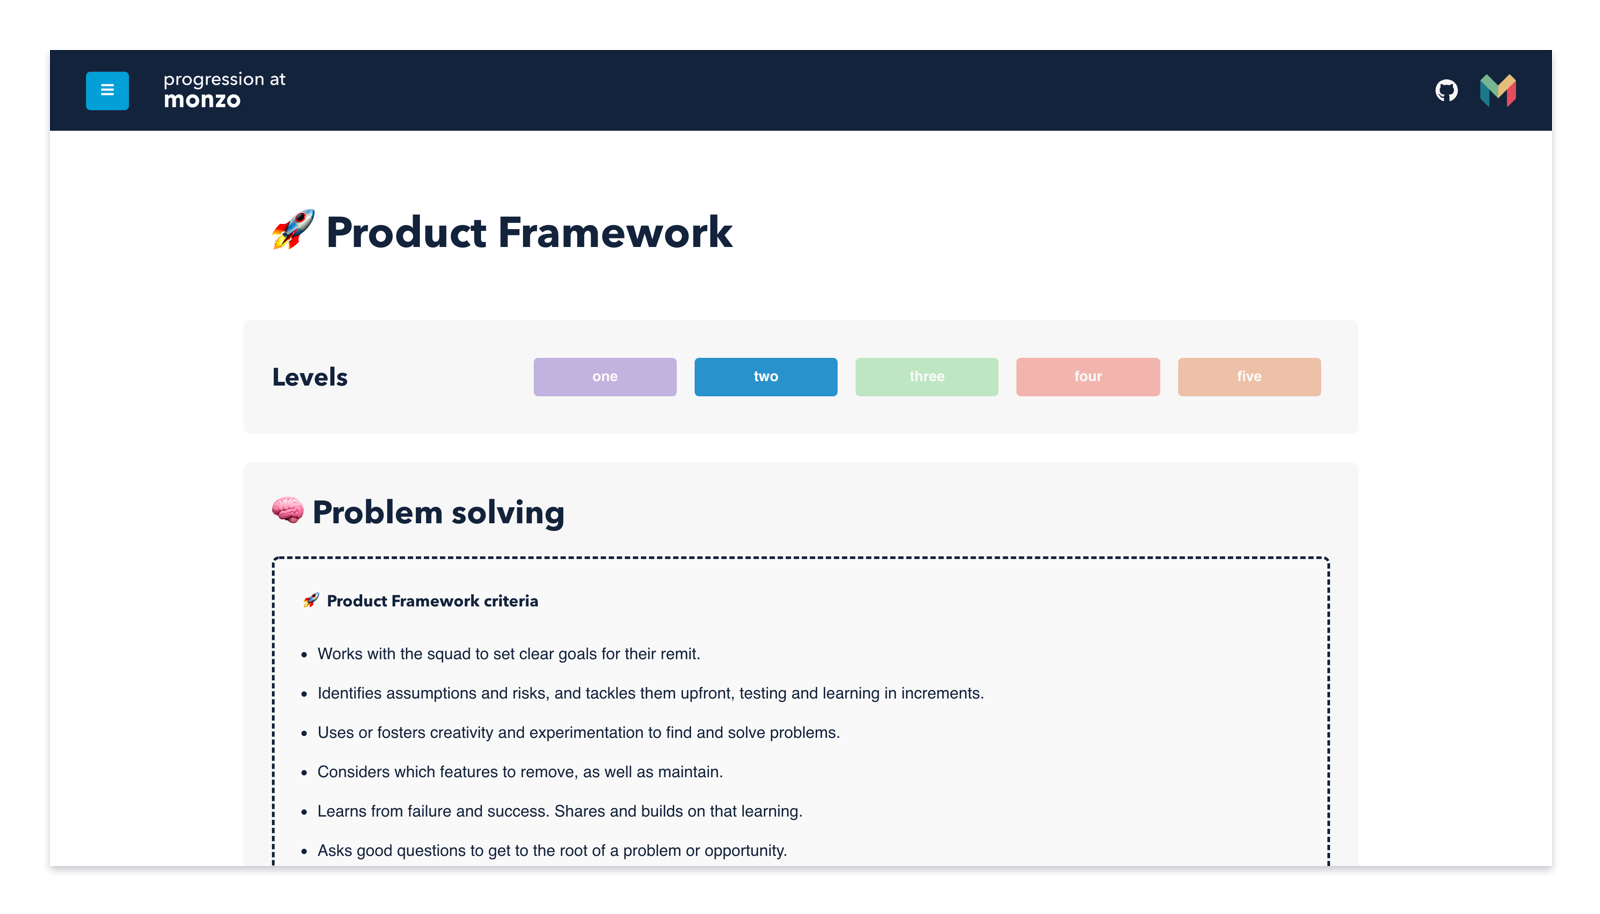 Screenshot of the progression framework website